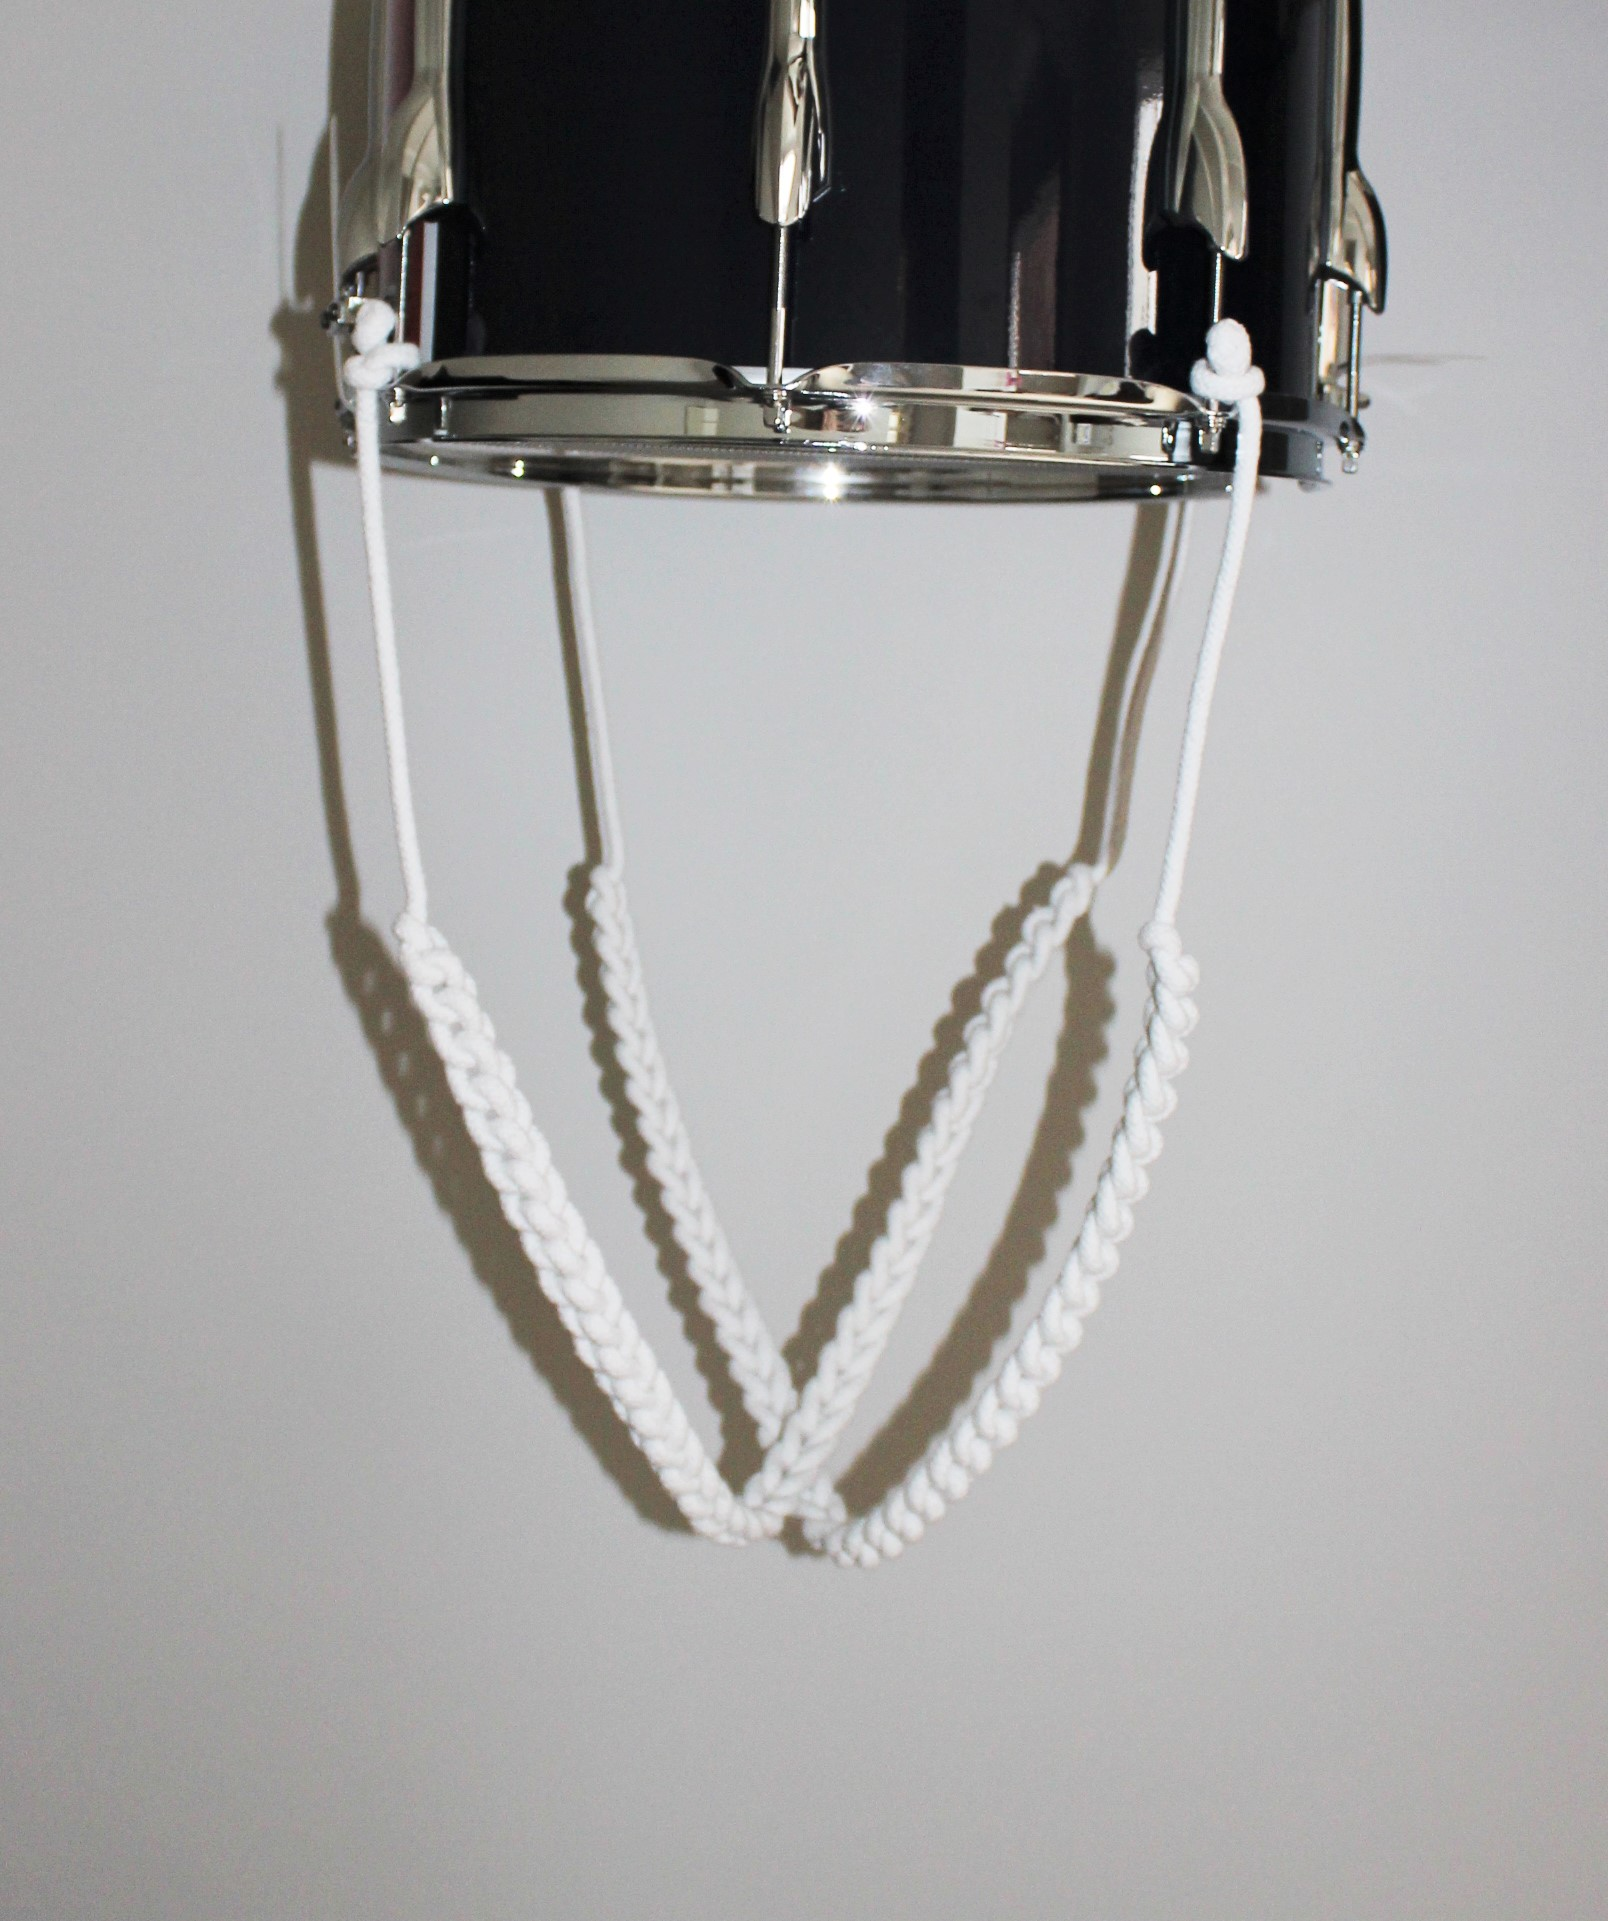 tmbs white cotton drum traces drag ropes the marching band shop. Black Bedroom Furniture Sets. Home Design Ideas